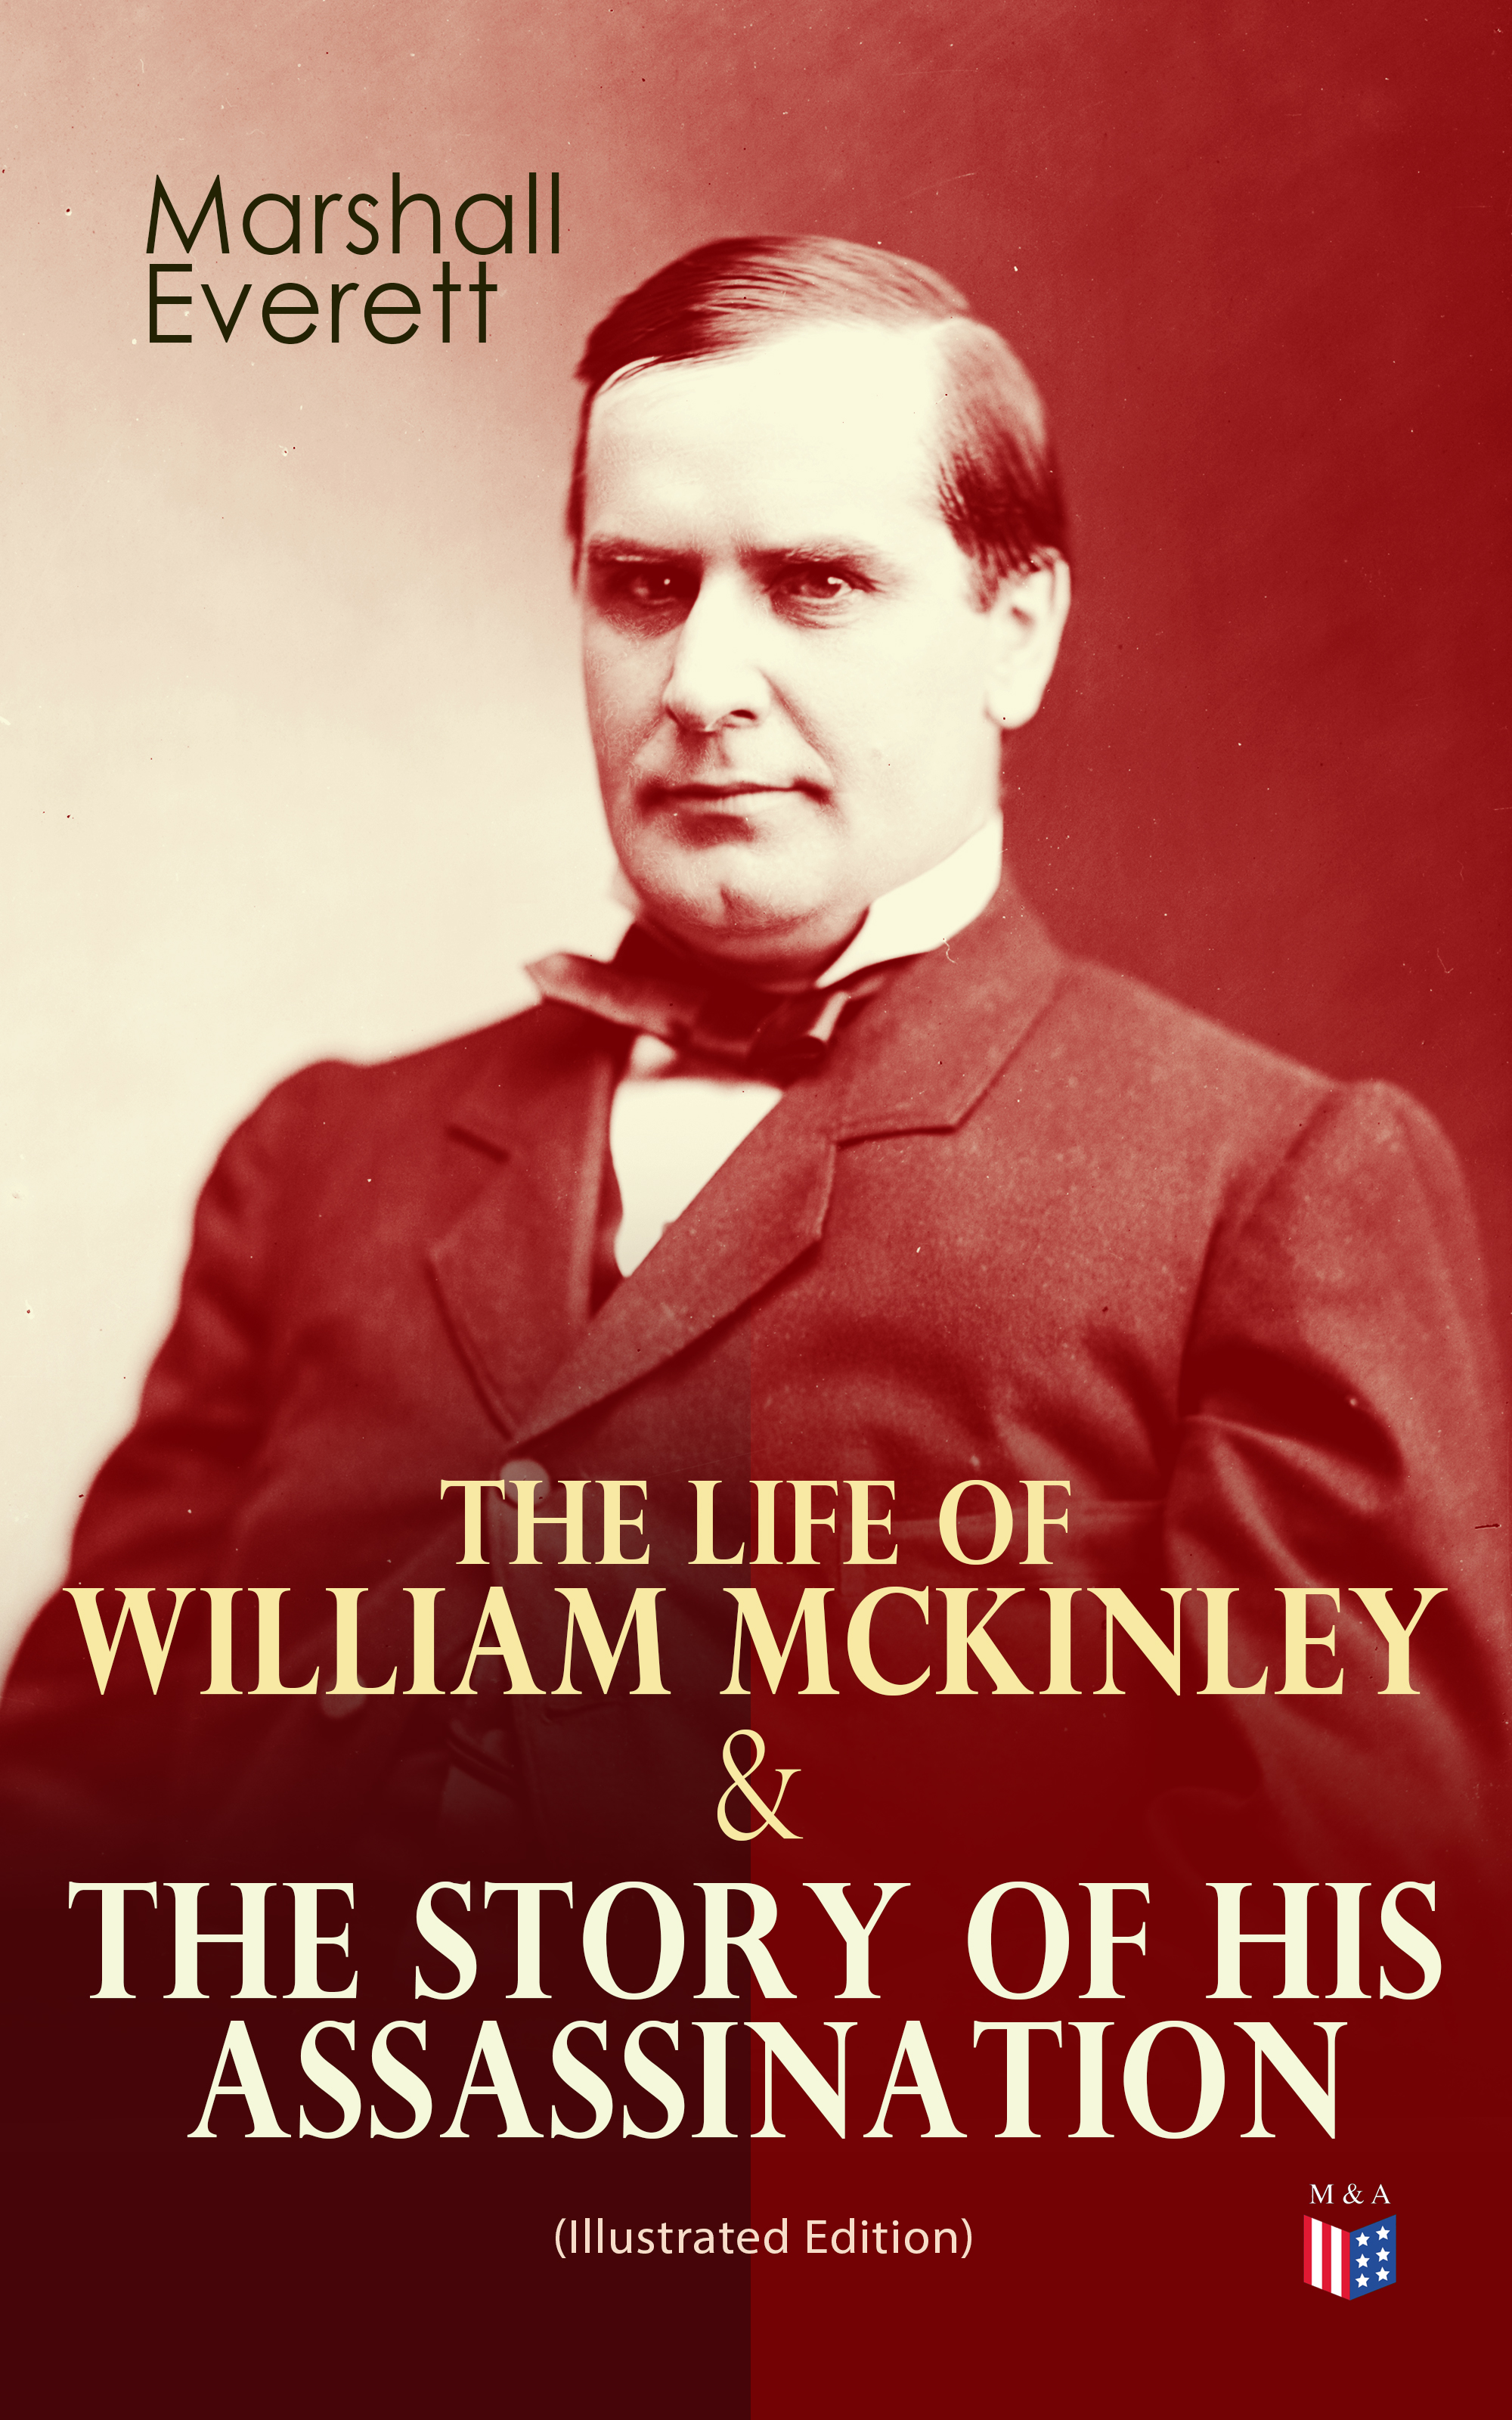 Everett Marshall The Life of William McKinley & The Story of His Assassination (Illustrated Edition) musicals the definitive illustrated story